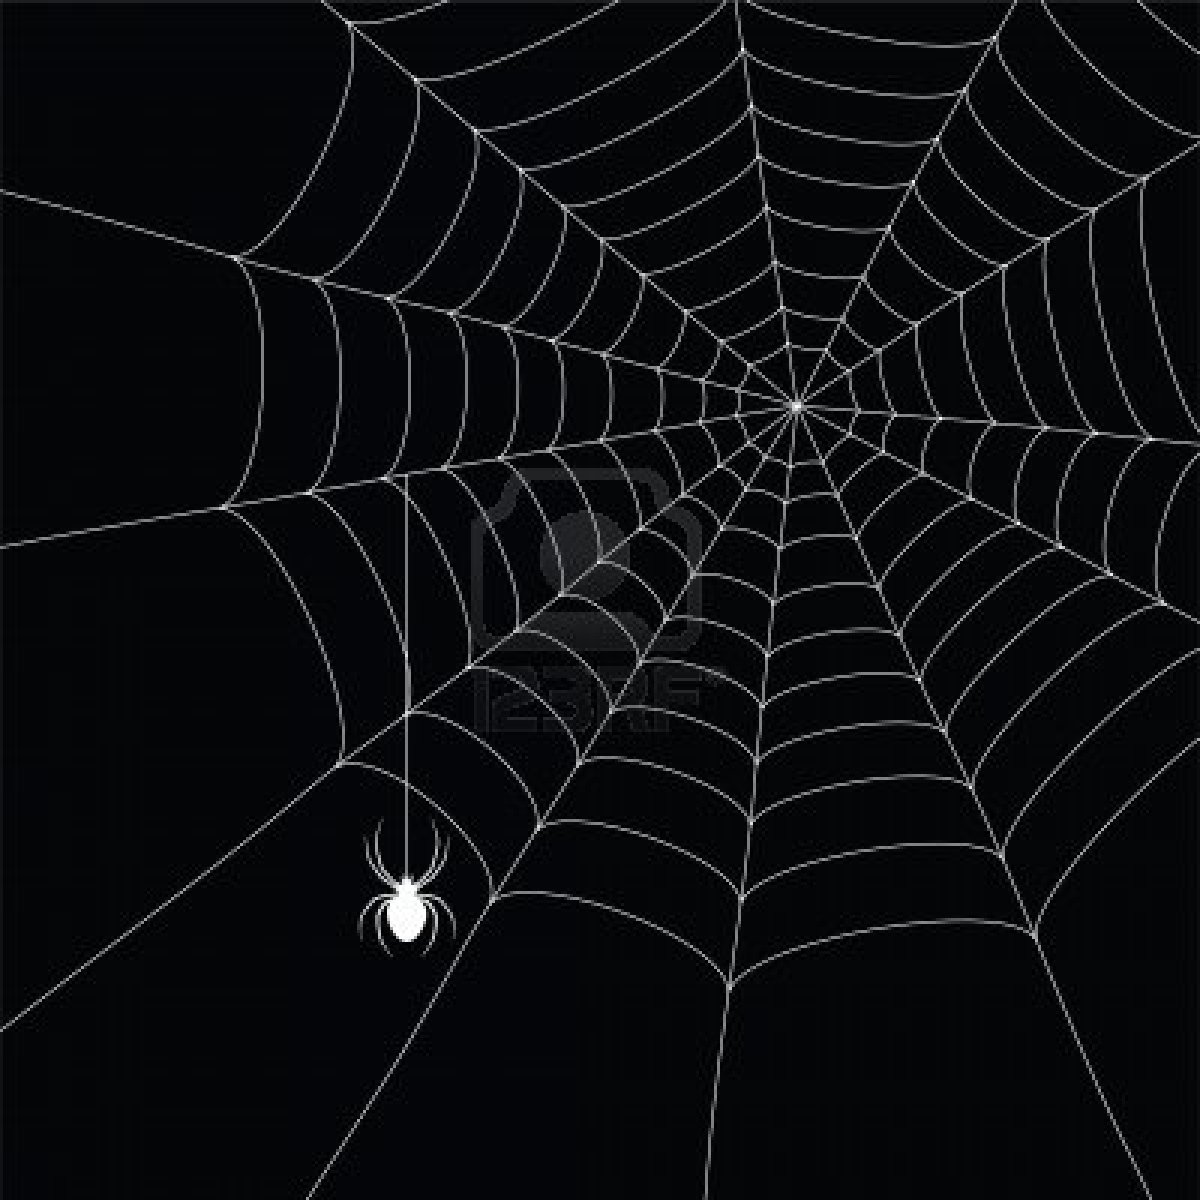 7985938-white-spider-and-spider-web-isolated-on-the-black-background